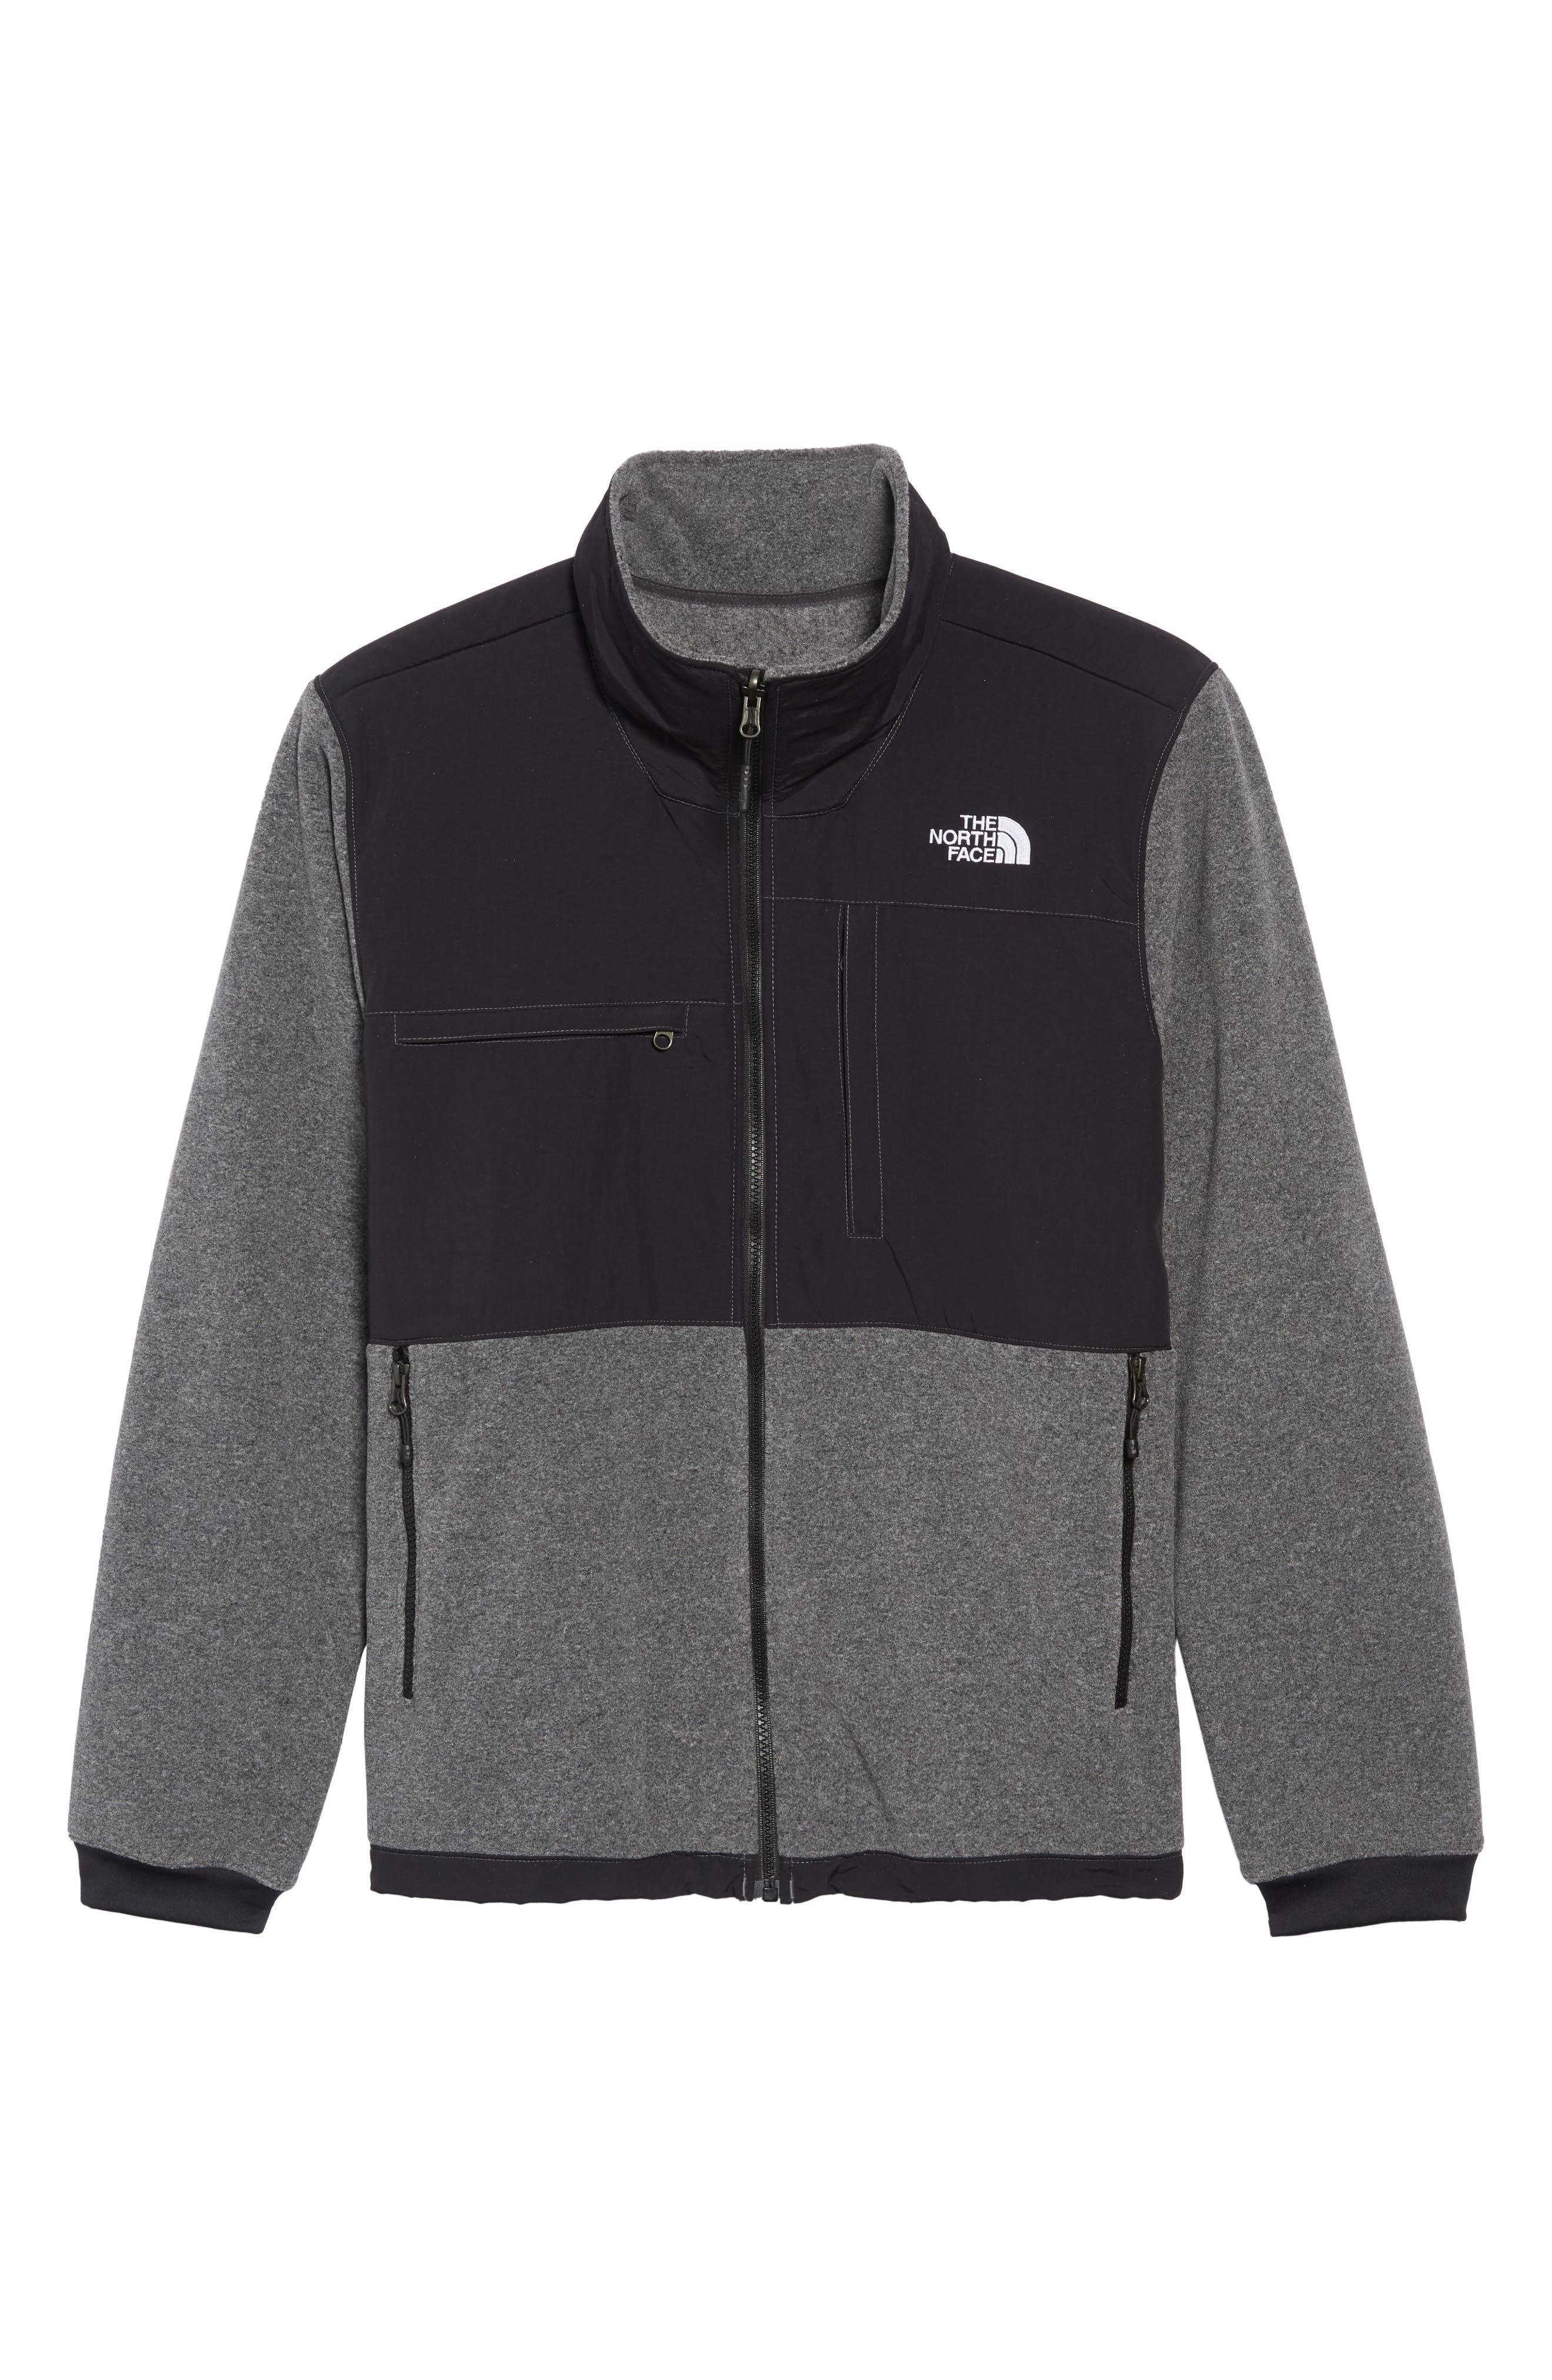 THE NORTH FACE,                             Denali 2 Jacket,                             Alternate thumbnail 7, color,                             RECYCLED CHARCOAL GREY HEATHER